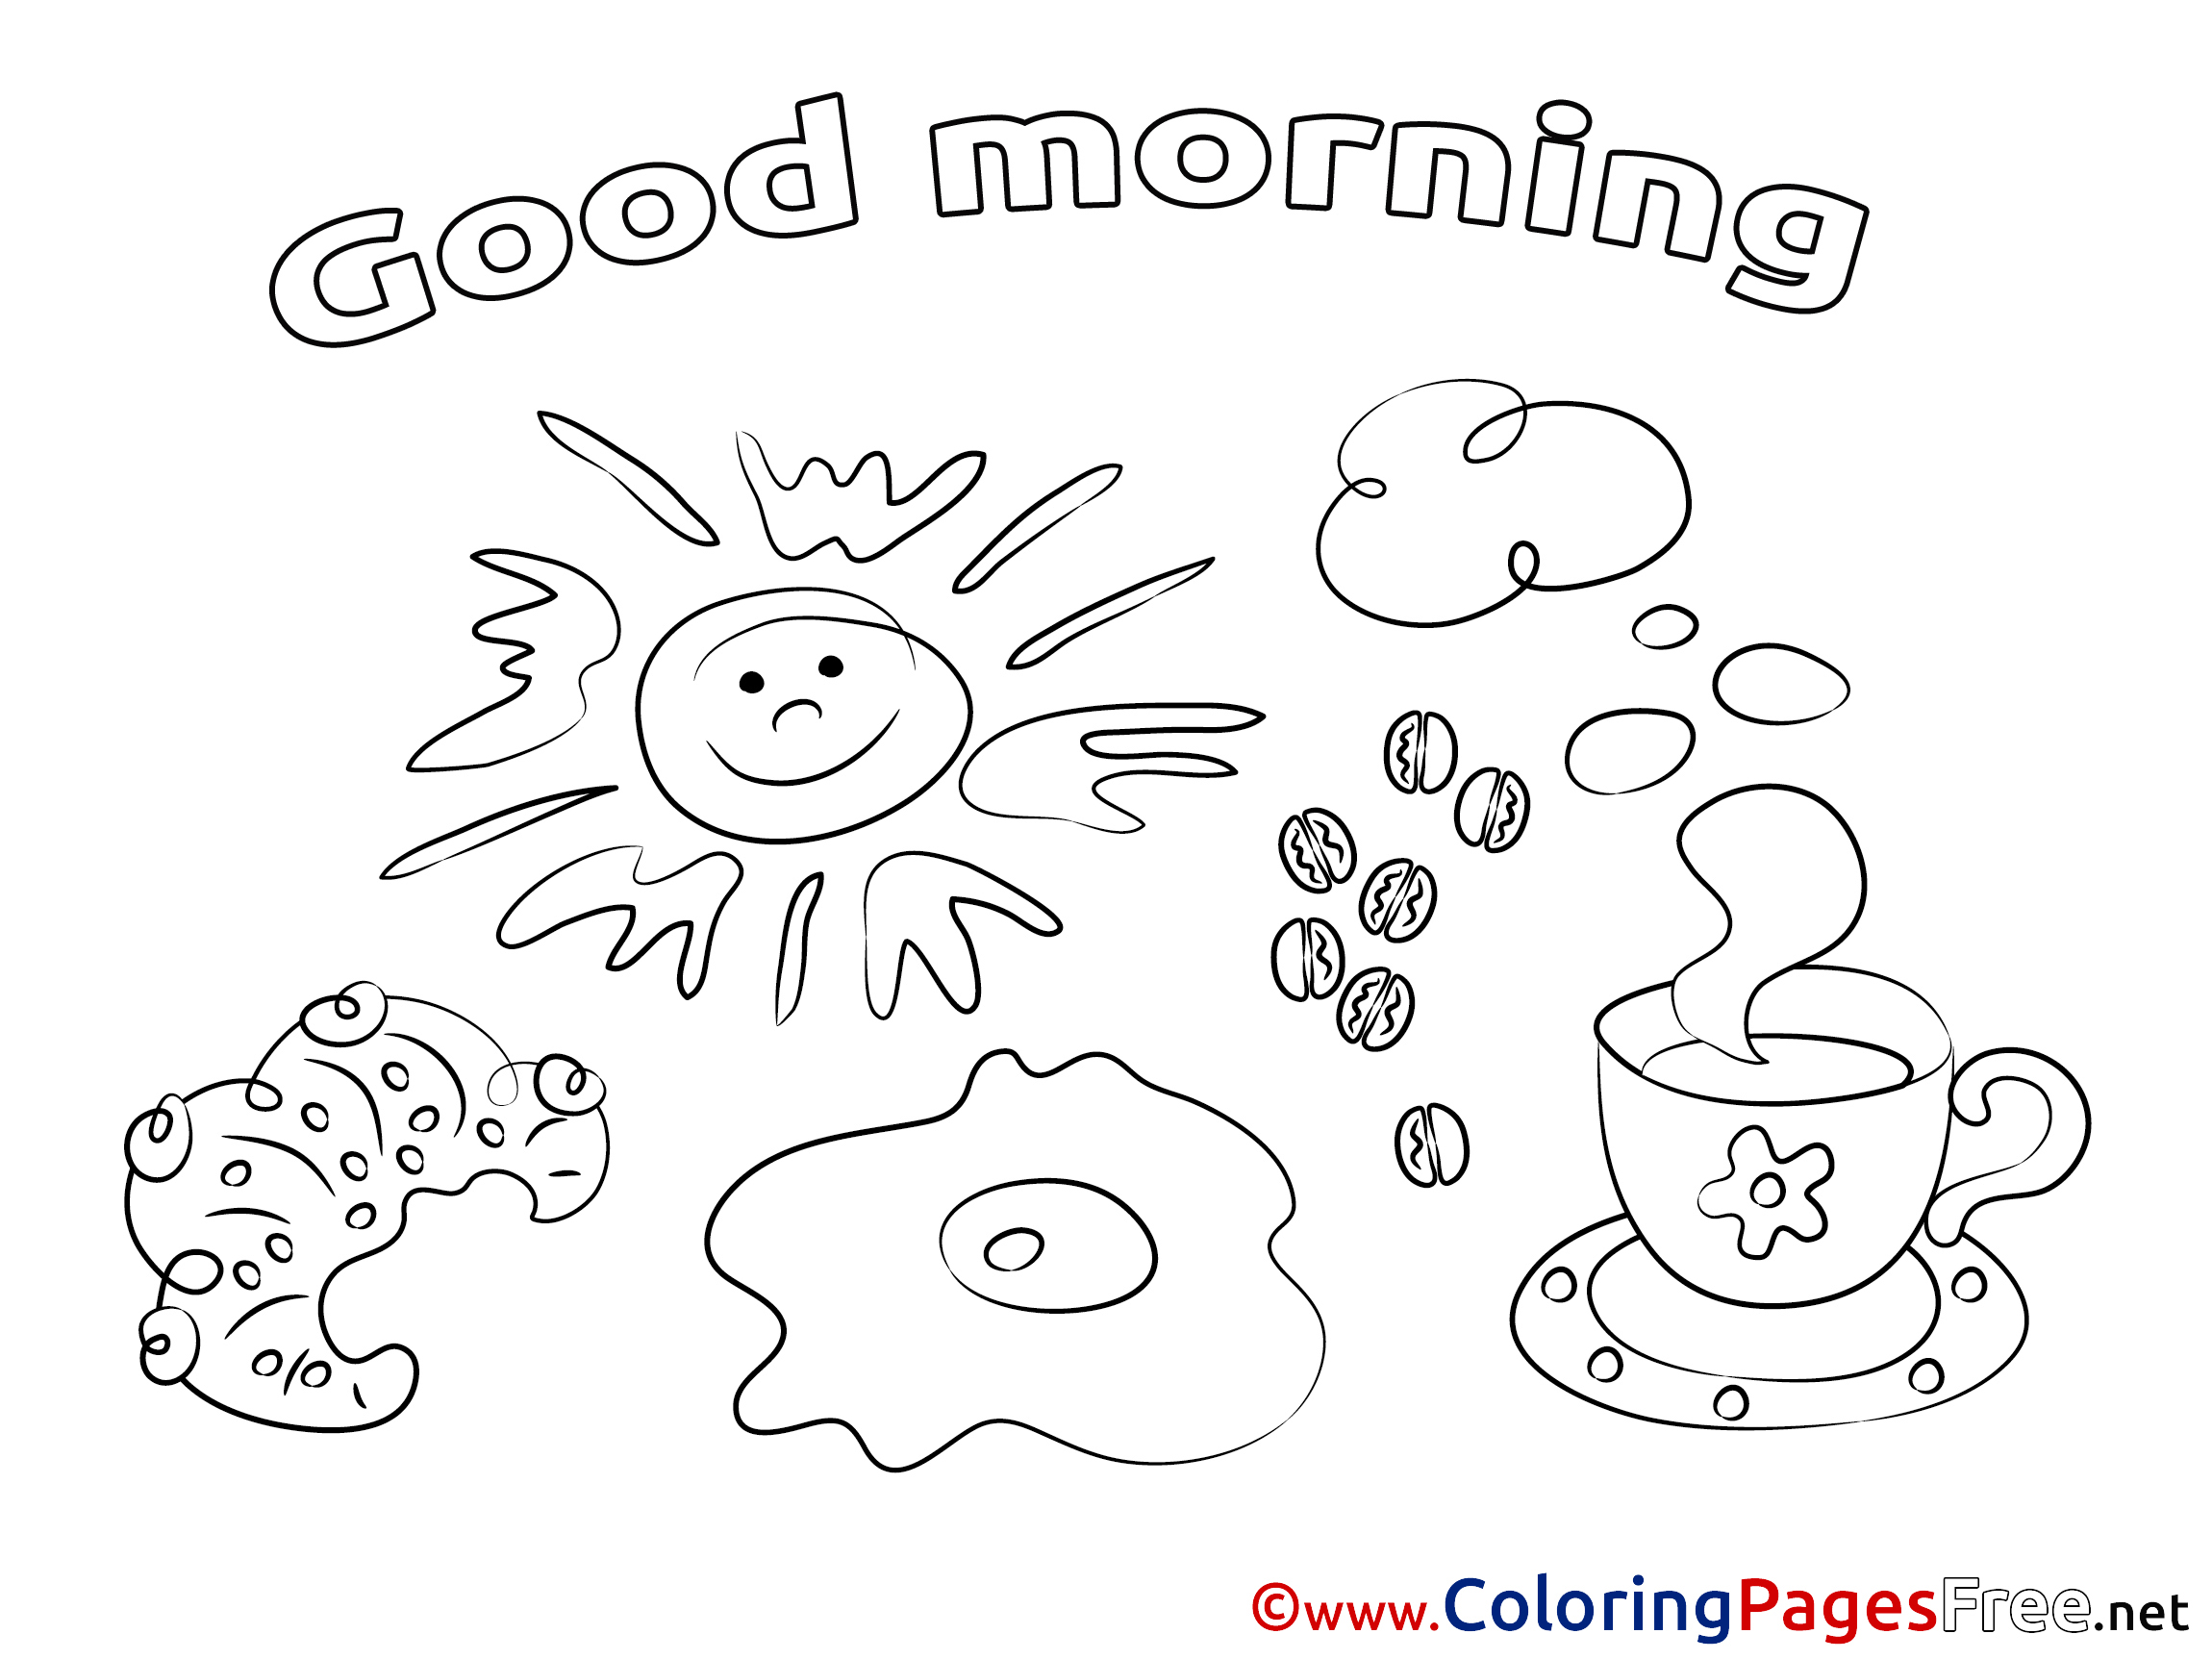 Good Morning Colouring Pages